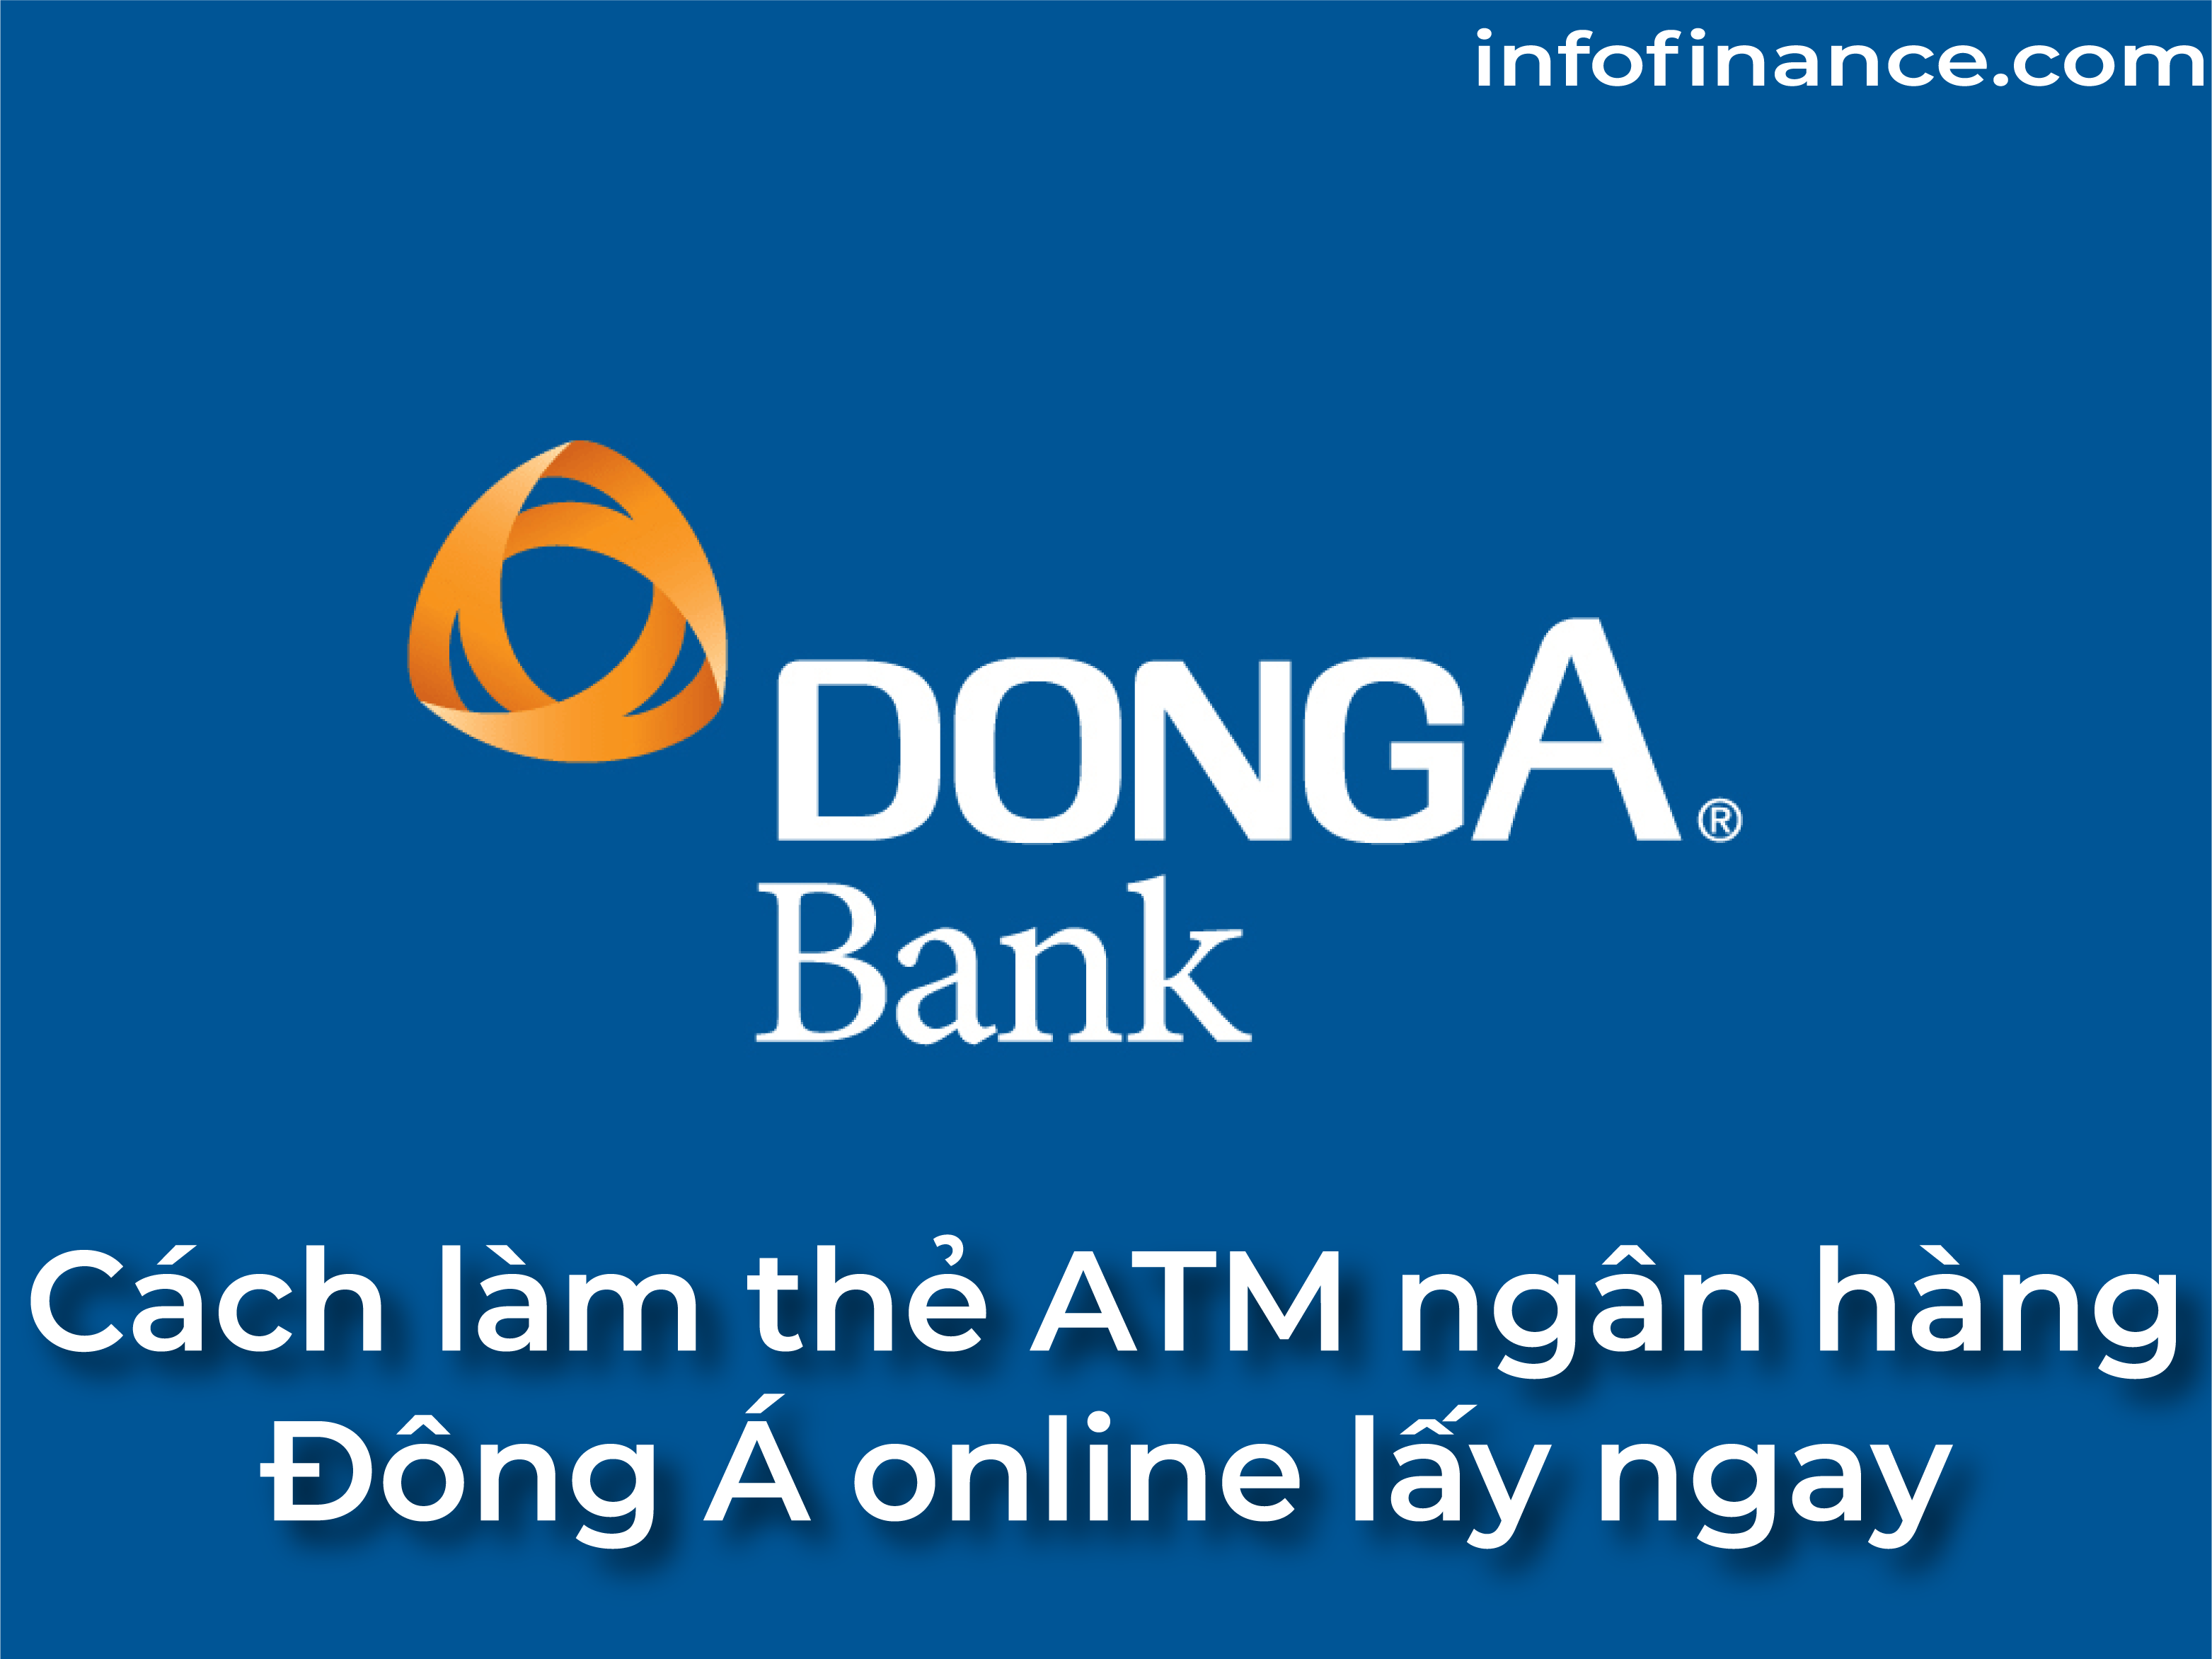 lam-the-atm-ngan-hang-dong-a-online-01